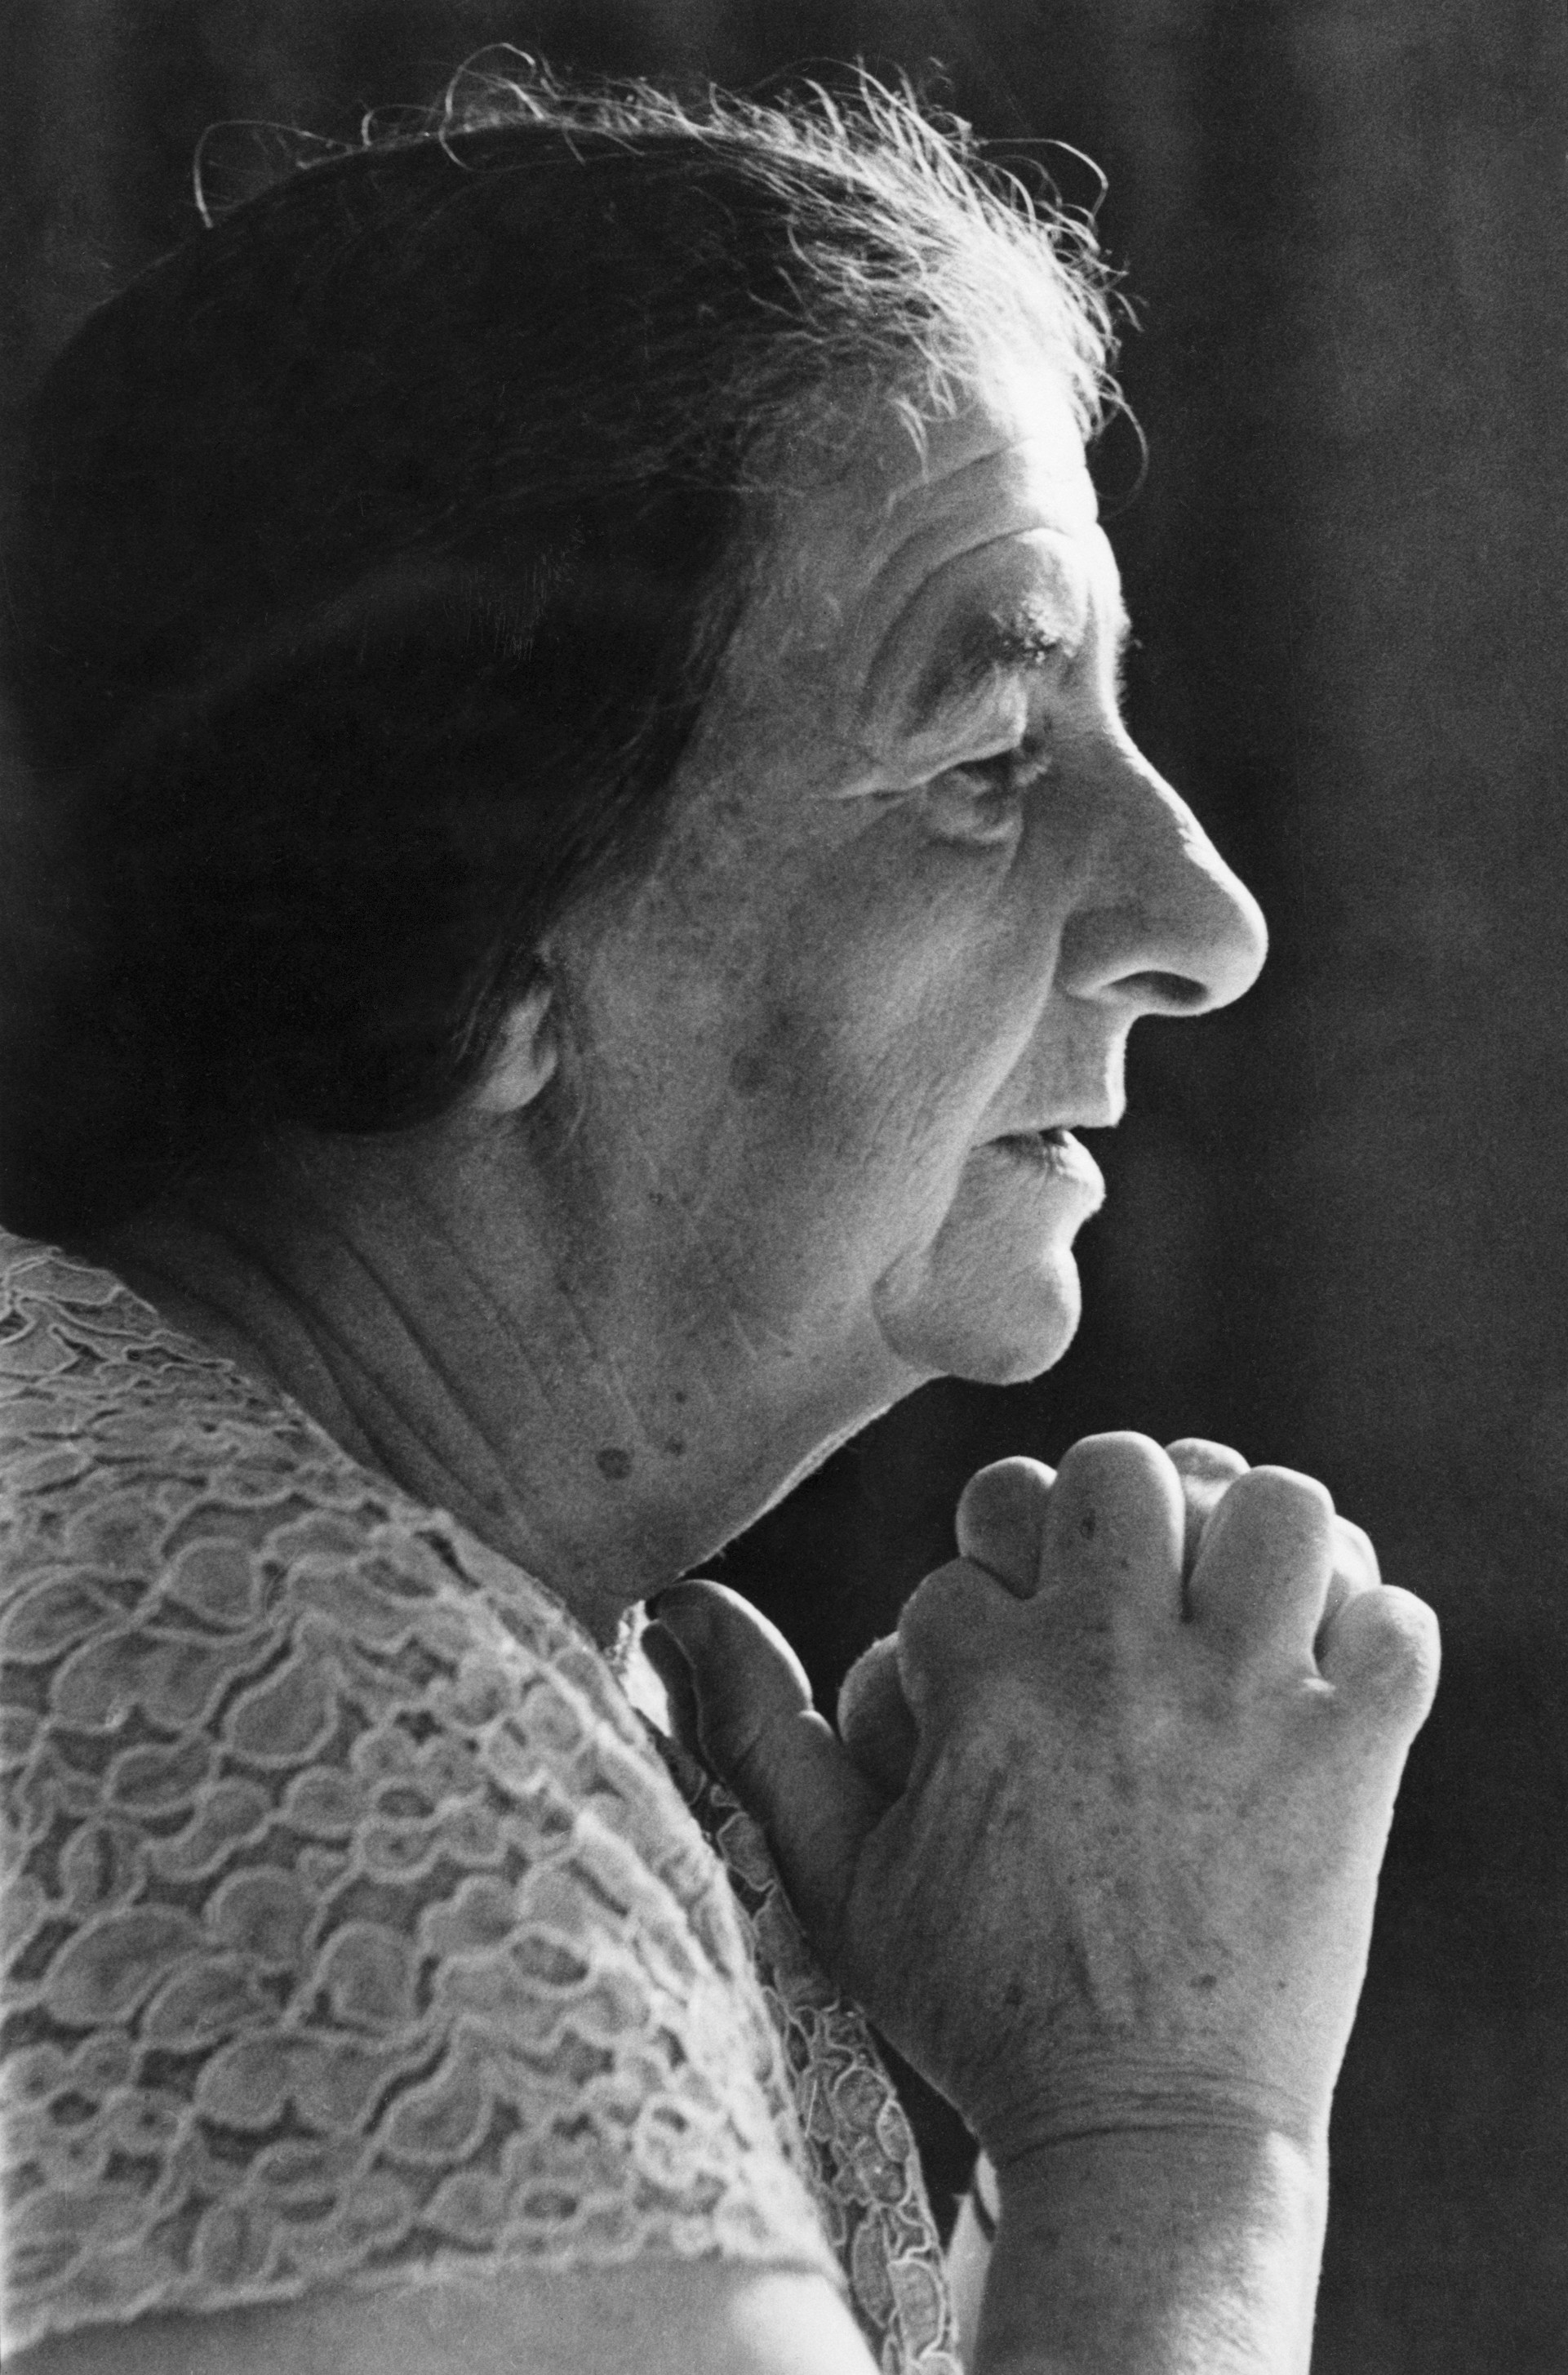 <strong>Golda Meir, Israel</strong>Although best known as Israel's Prime Minister during the 1973 Yom Kippur War, Meir made her mark on the revolutionary Zionist movement during the pre-state period when during a 1948 trip to the U.S., she raised $50 million from the Jewish diaspora community, making a state of Israel possible.